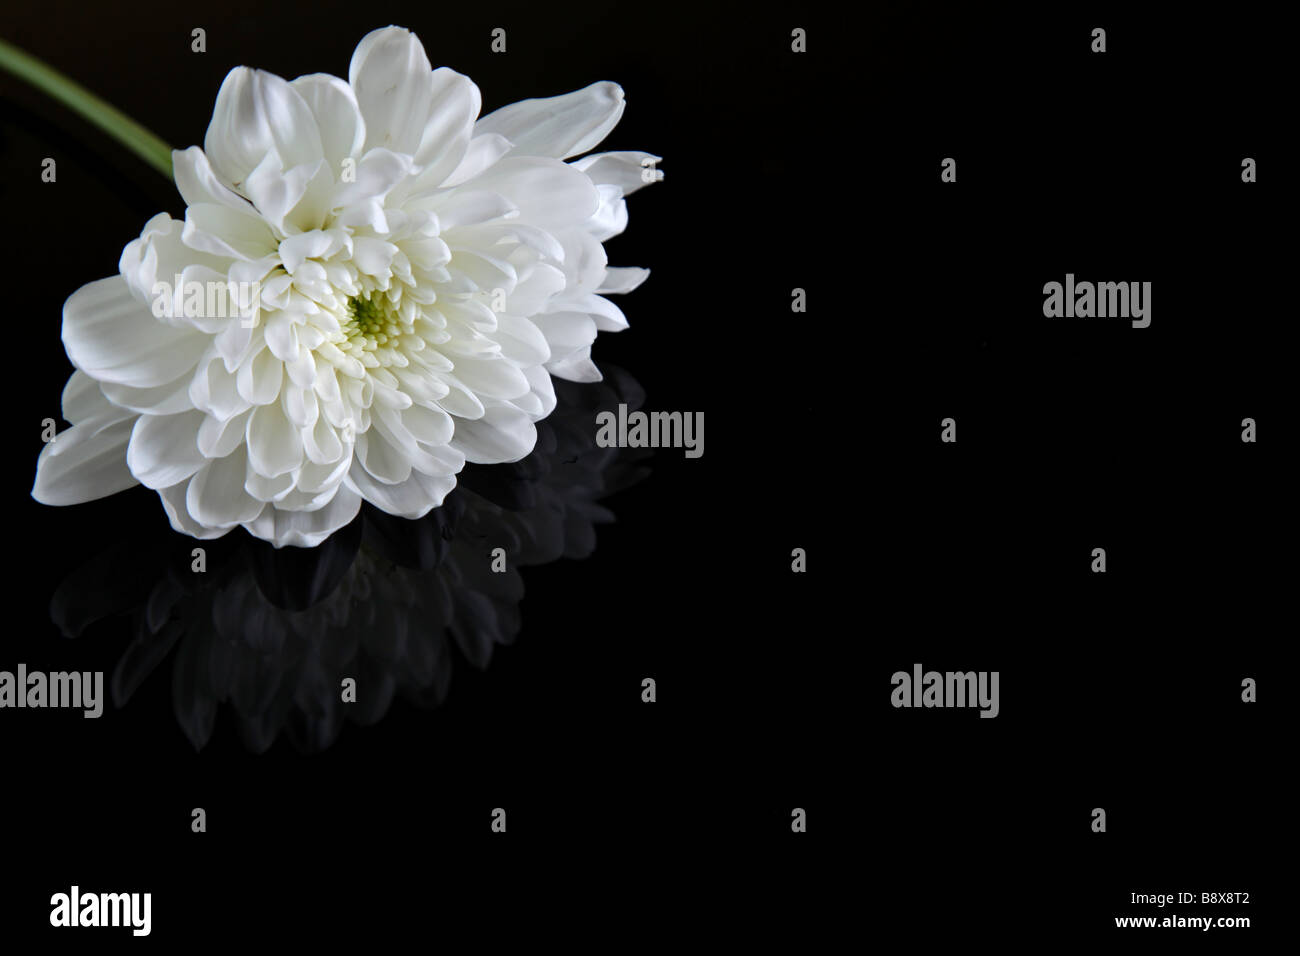 White flower on black - Stock Image